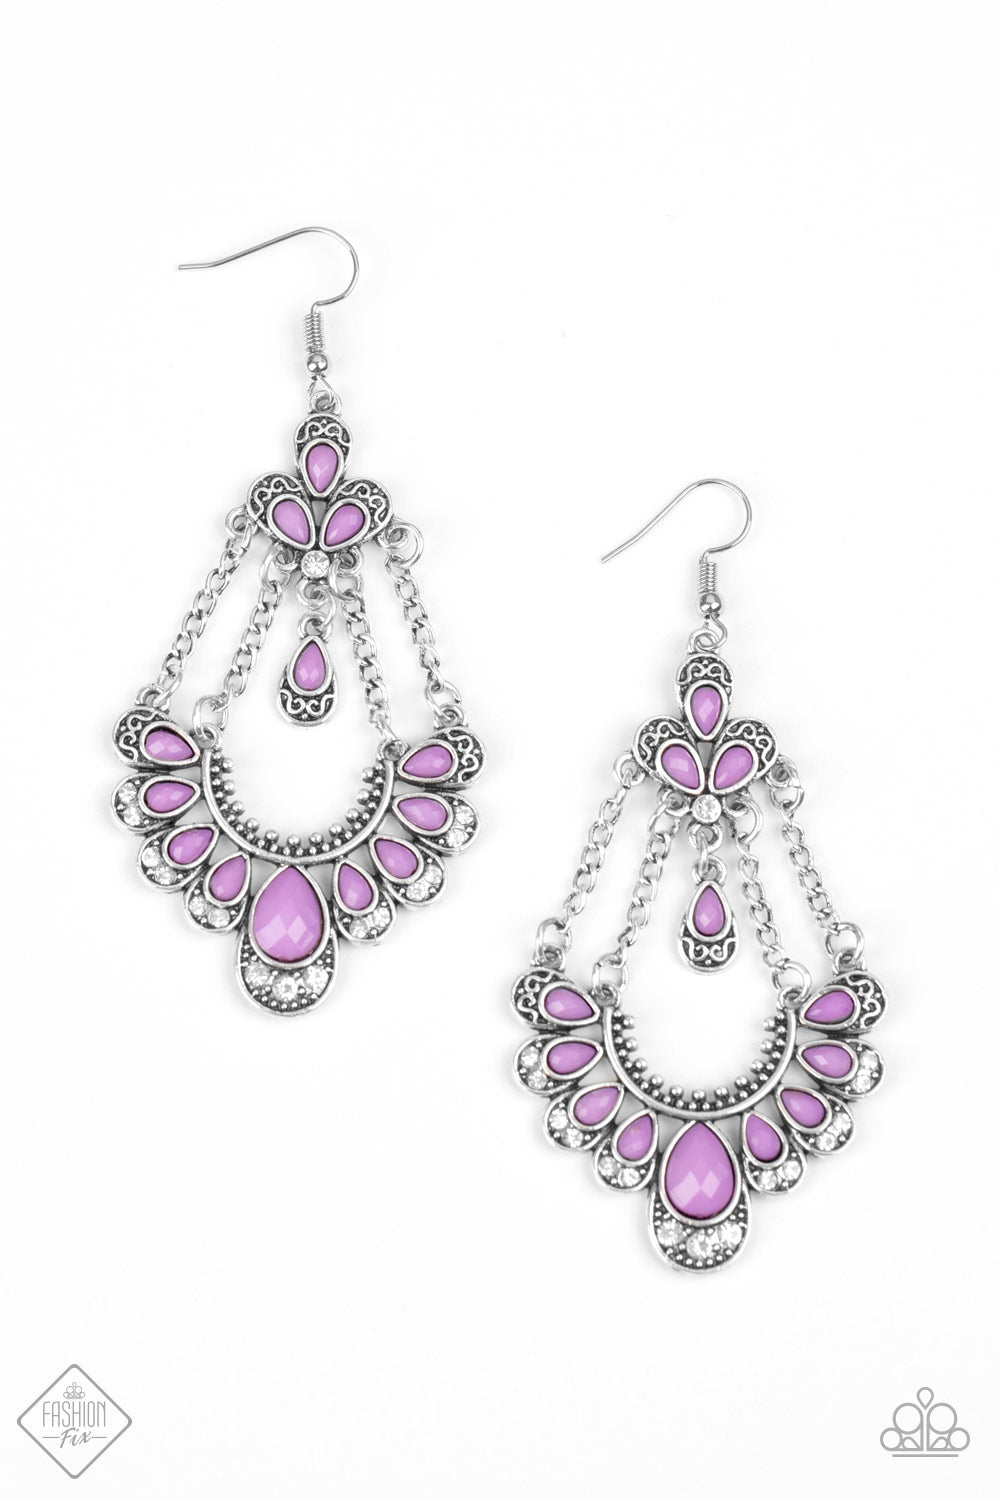 Glimpses of Malibu Unique Chic - Purple Earrings